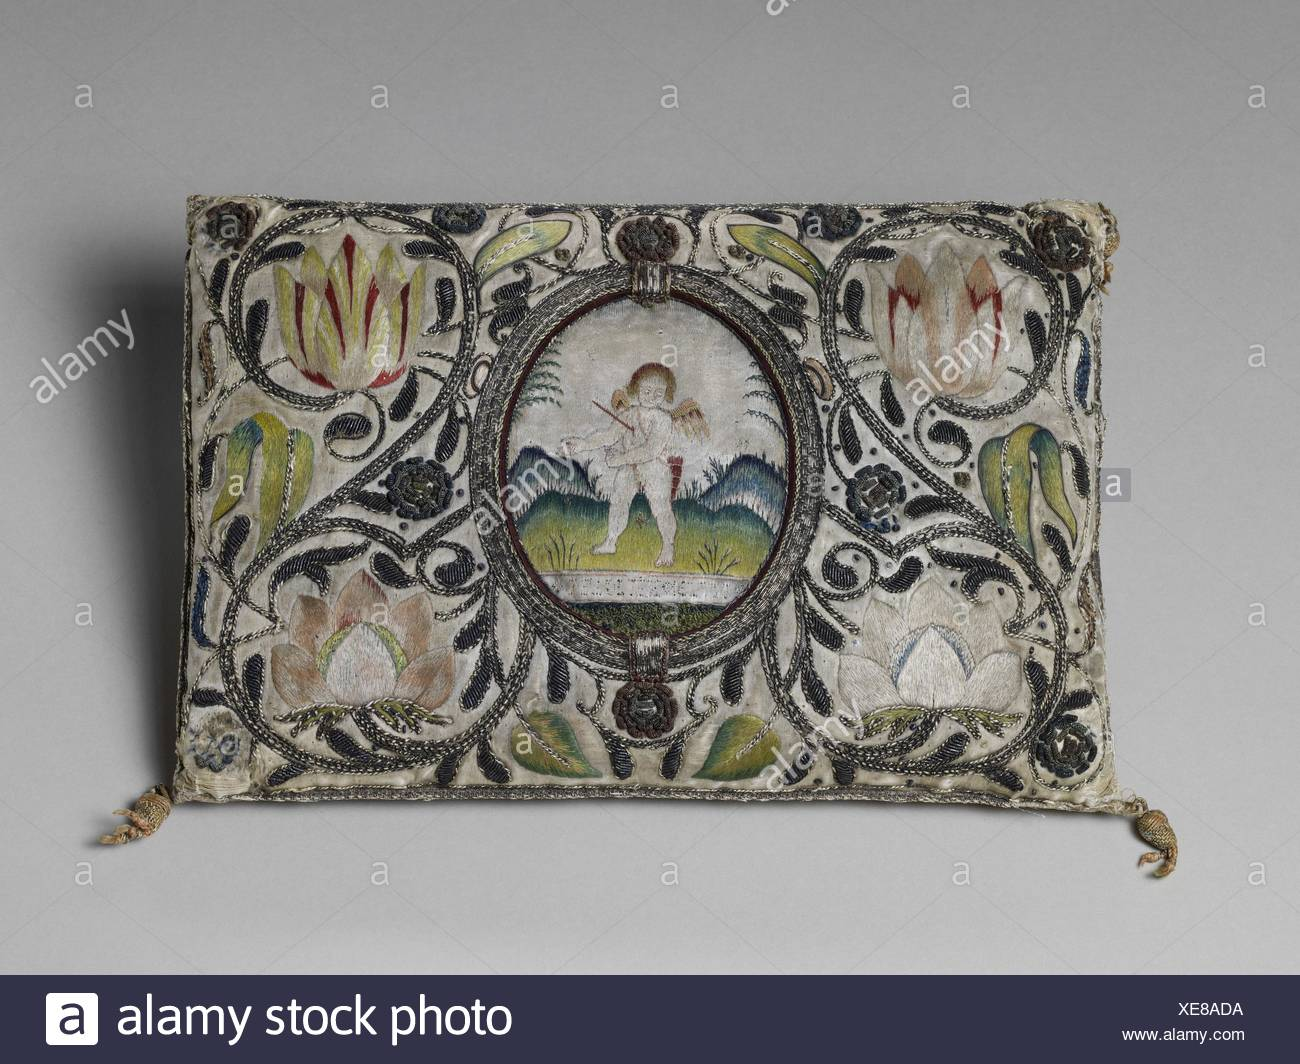 Cushion. Date: 1620-40; Culture: British or Dutch; Medium: Satin worked with silk and metal thread; satin, long-and-short, and couching stitches; - Stock Image